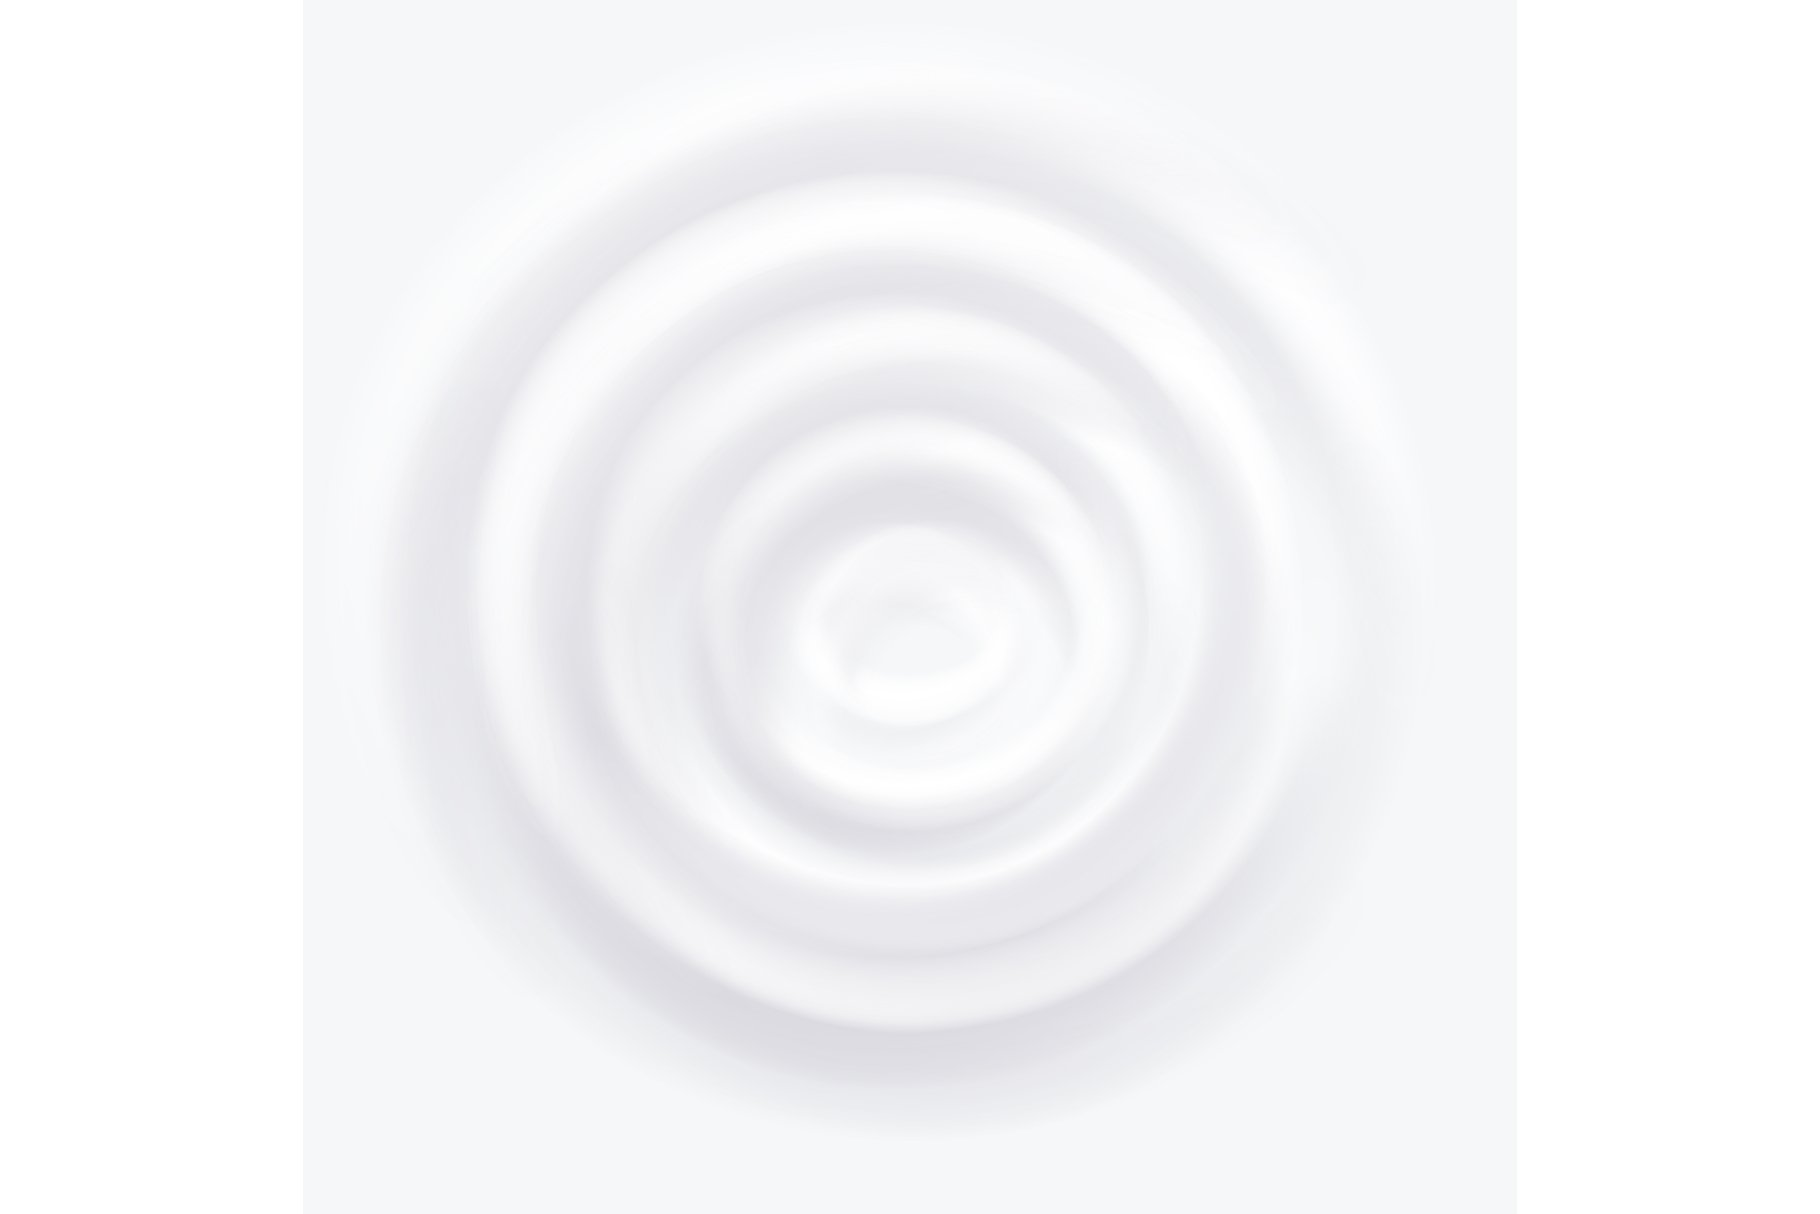 Milk Splash Vector. Cream Clean Circle Waves. Falling Drop. example image 1